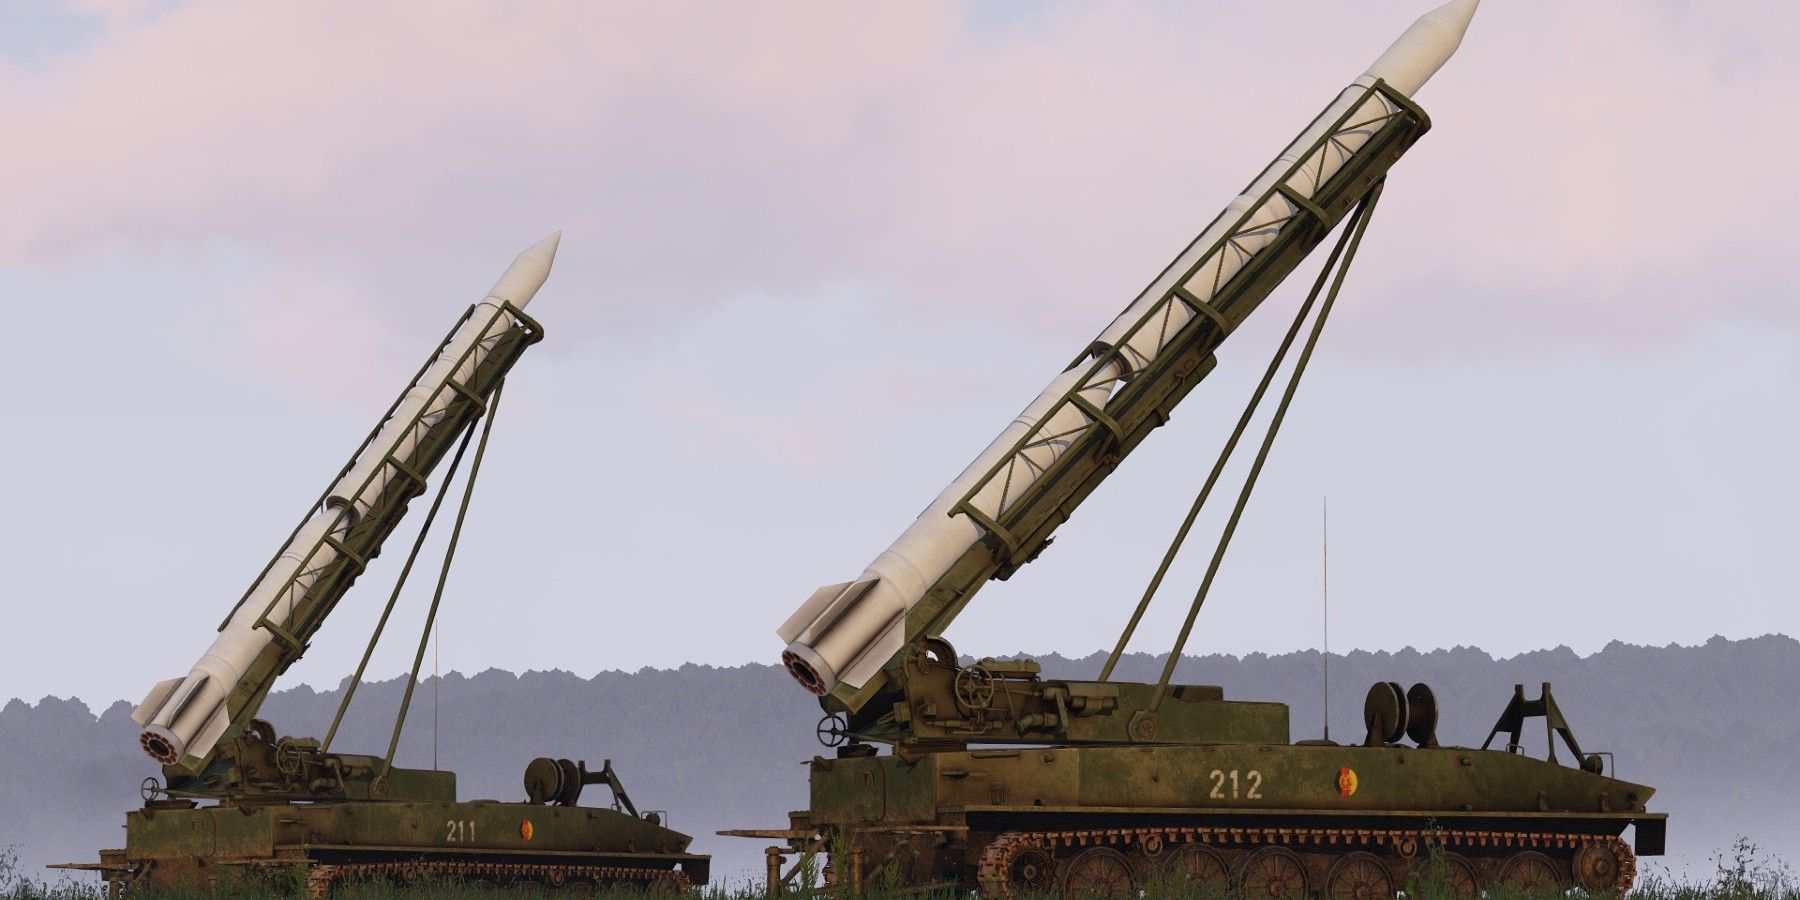 Arma 3 Update Adding Heavy Artillery and Nukes